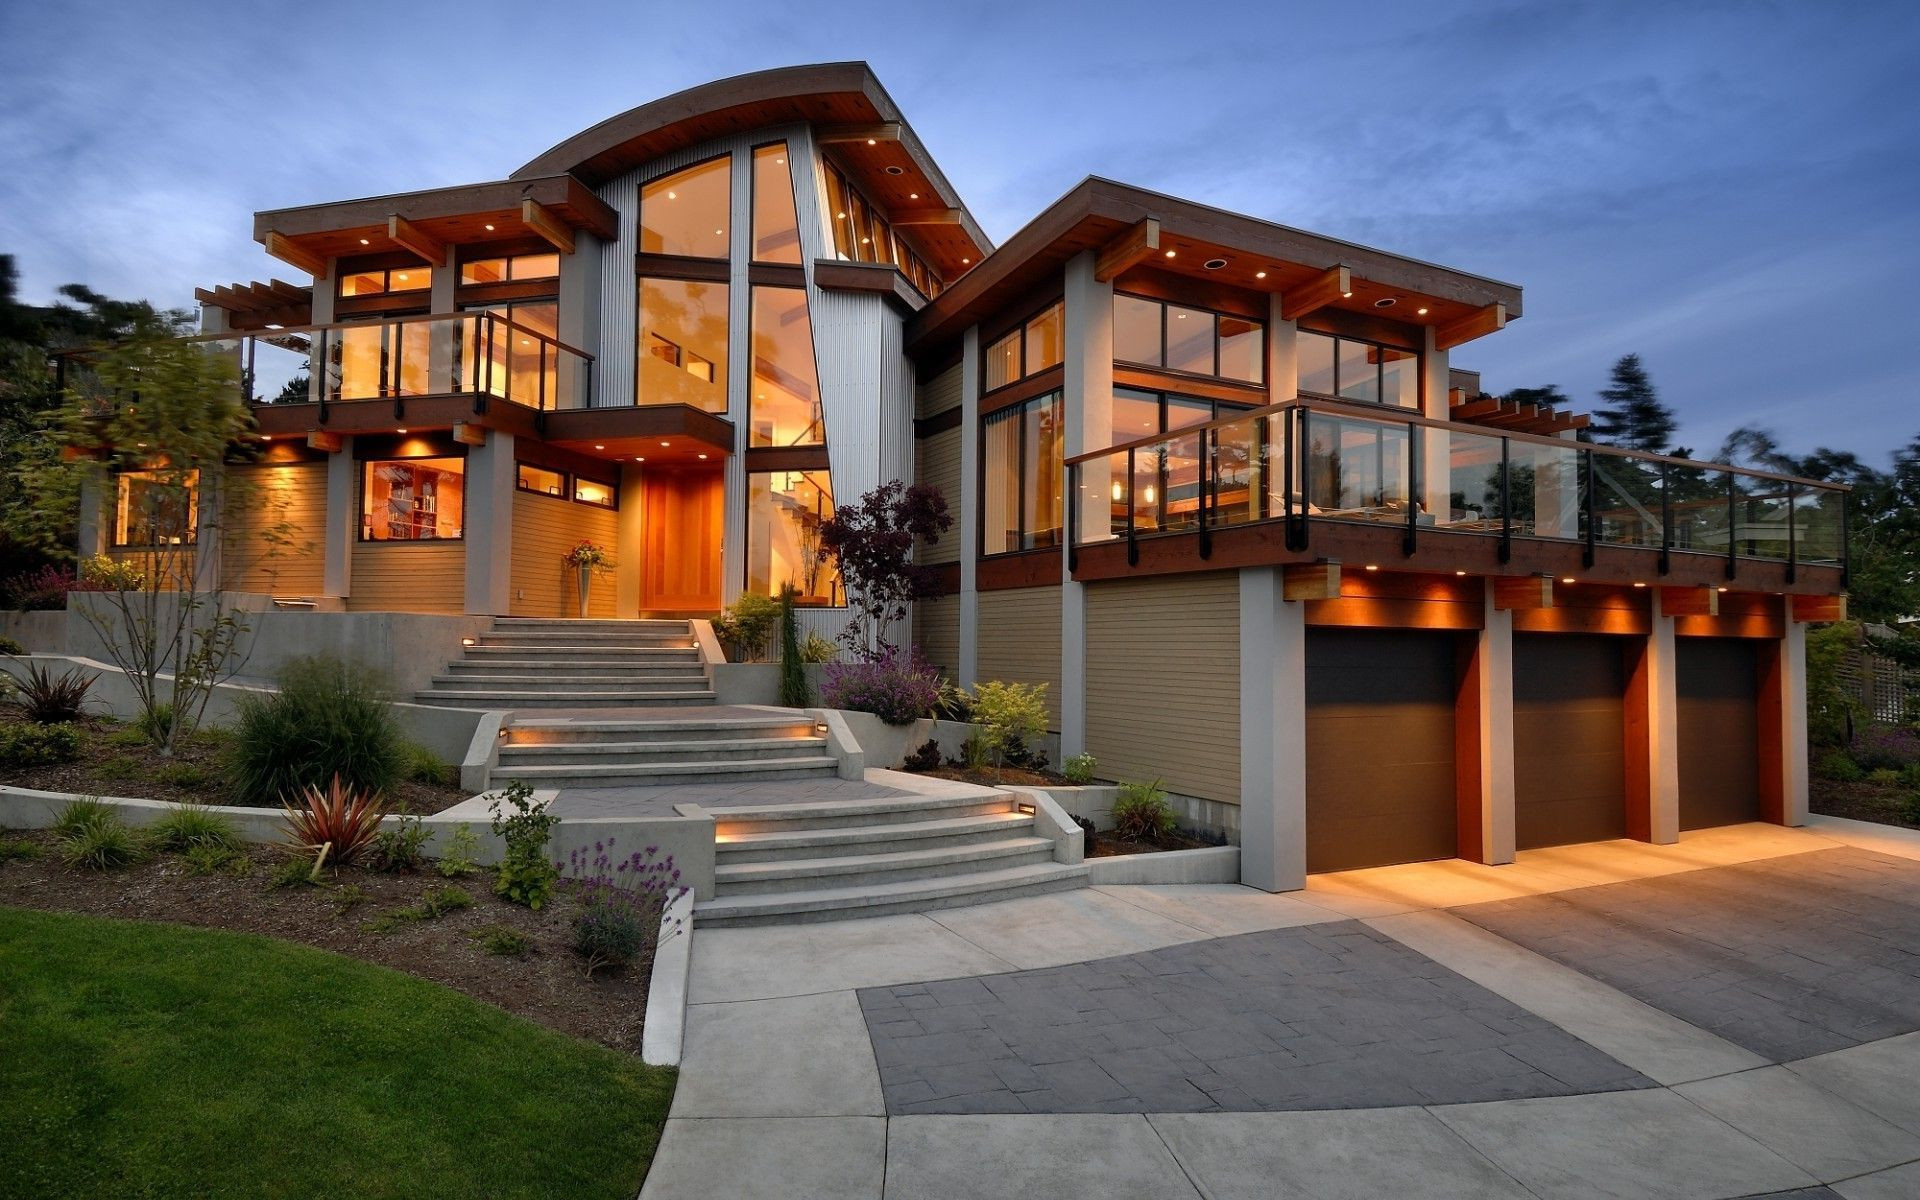 House architecture hd wallpaper hd latest wallpapers for Home wallpaper vancouver